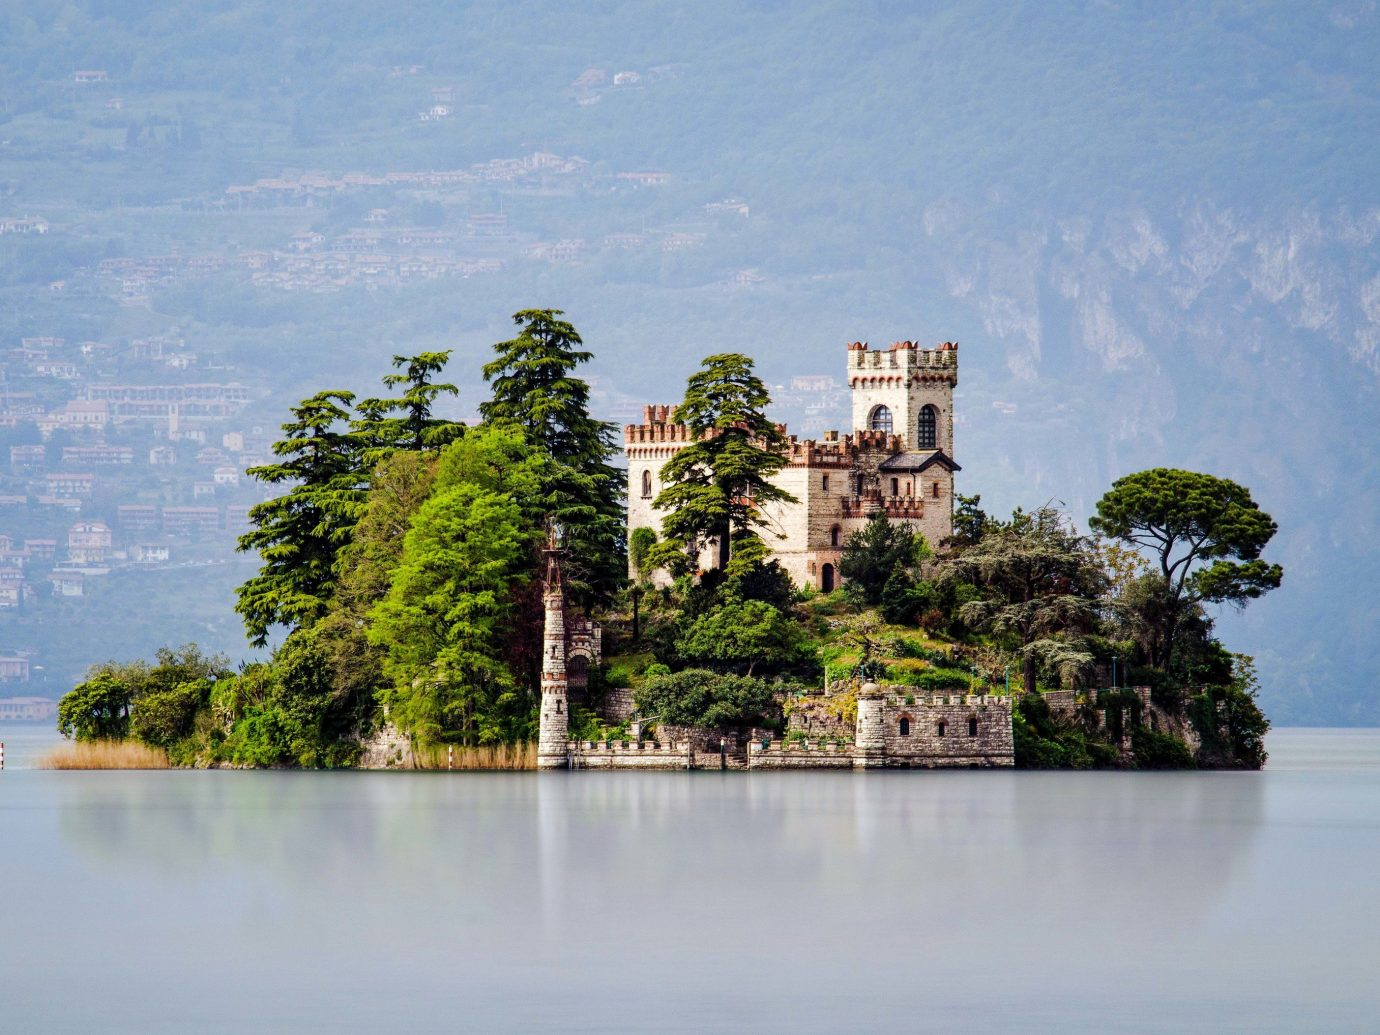 europe Italy Off-the-beaten Path Trip Ideas Nature landmark historic site tourist attraction sky reflection archaeological site tree reservoir Lake tourism mount scenery promontory water islet